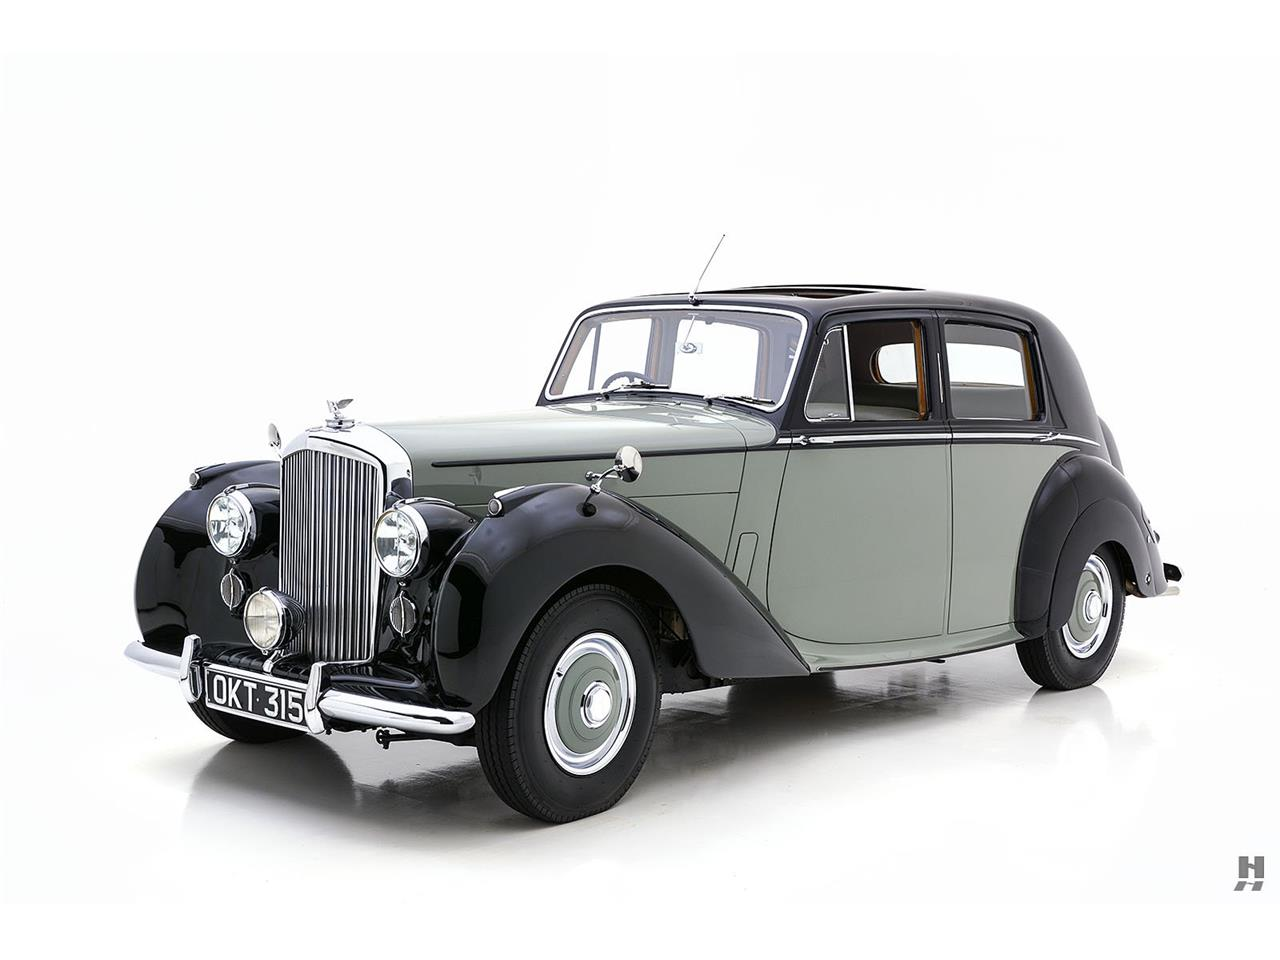 Large Picture of '52 Bentley Mark VI - $43,500.00 Offered by Hyman Ltd. Classic Cars - R3WC